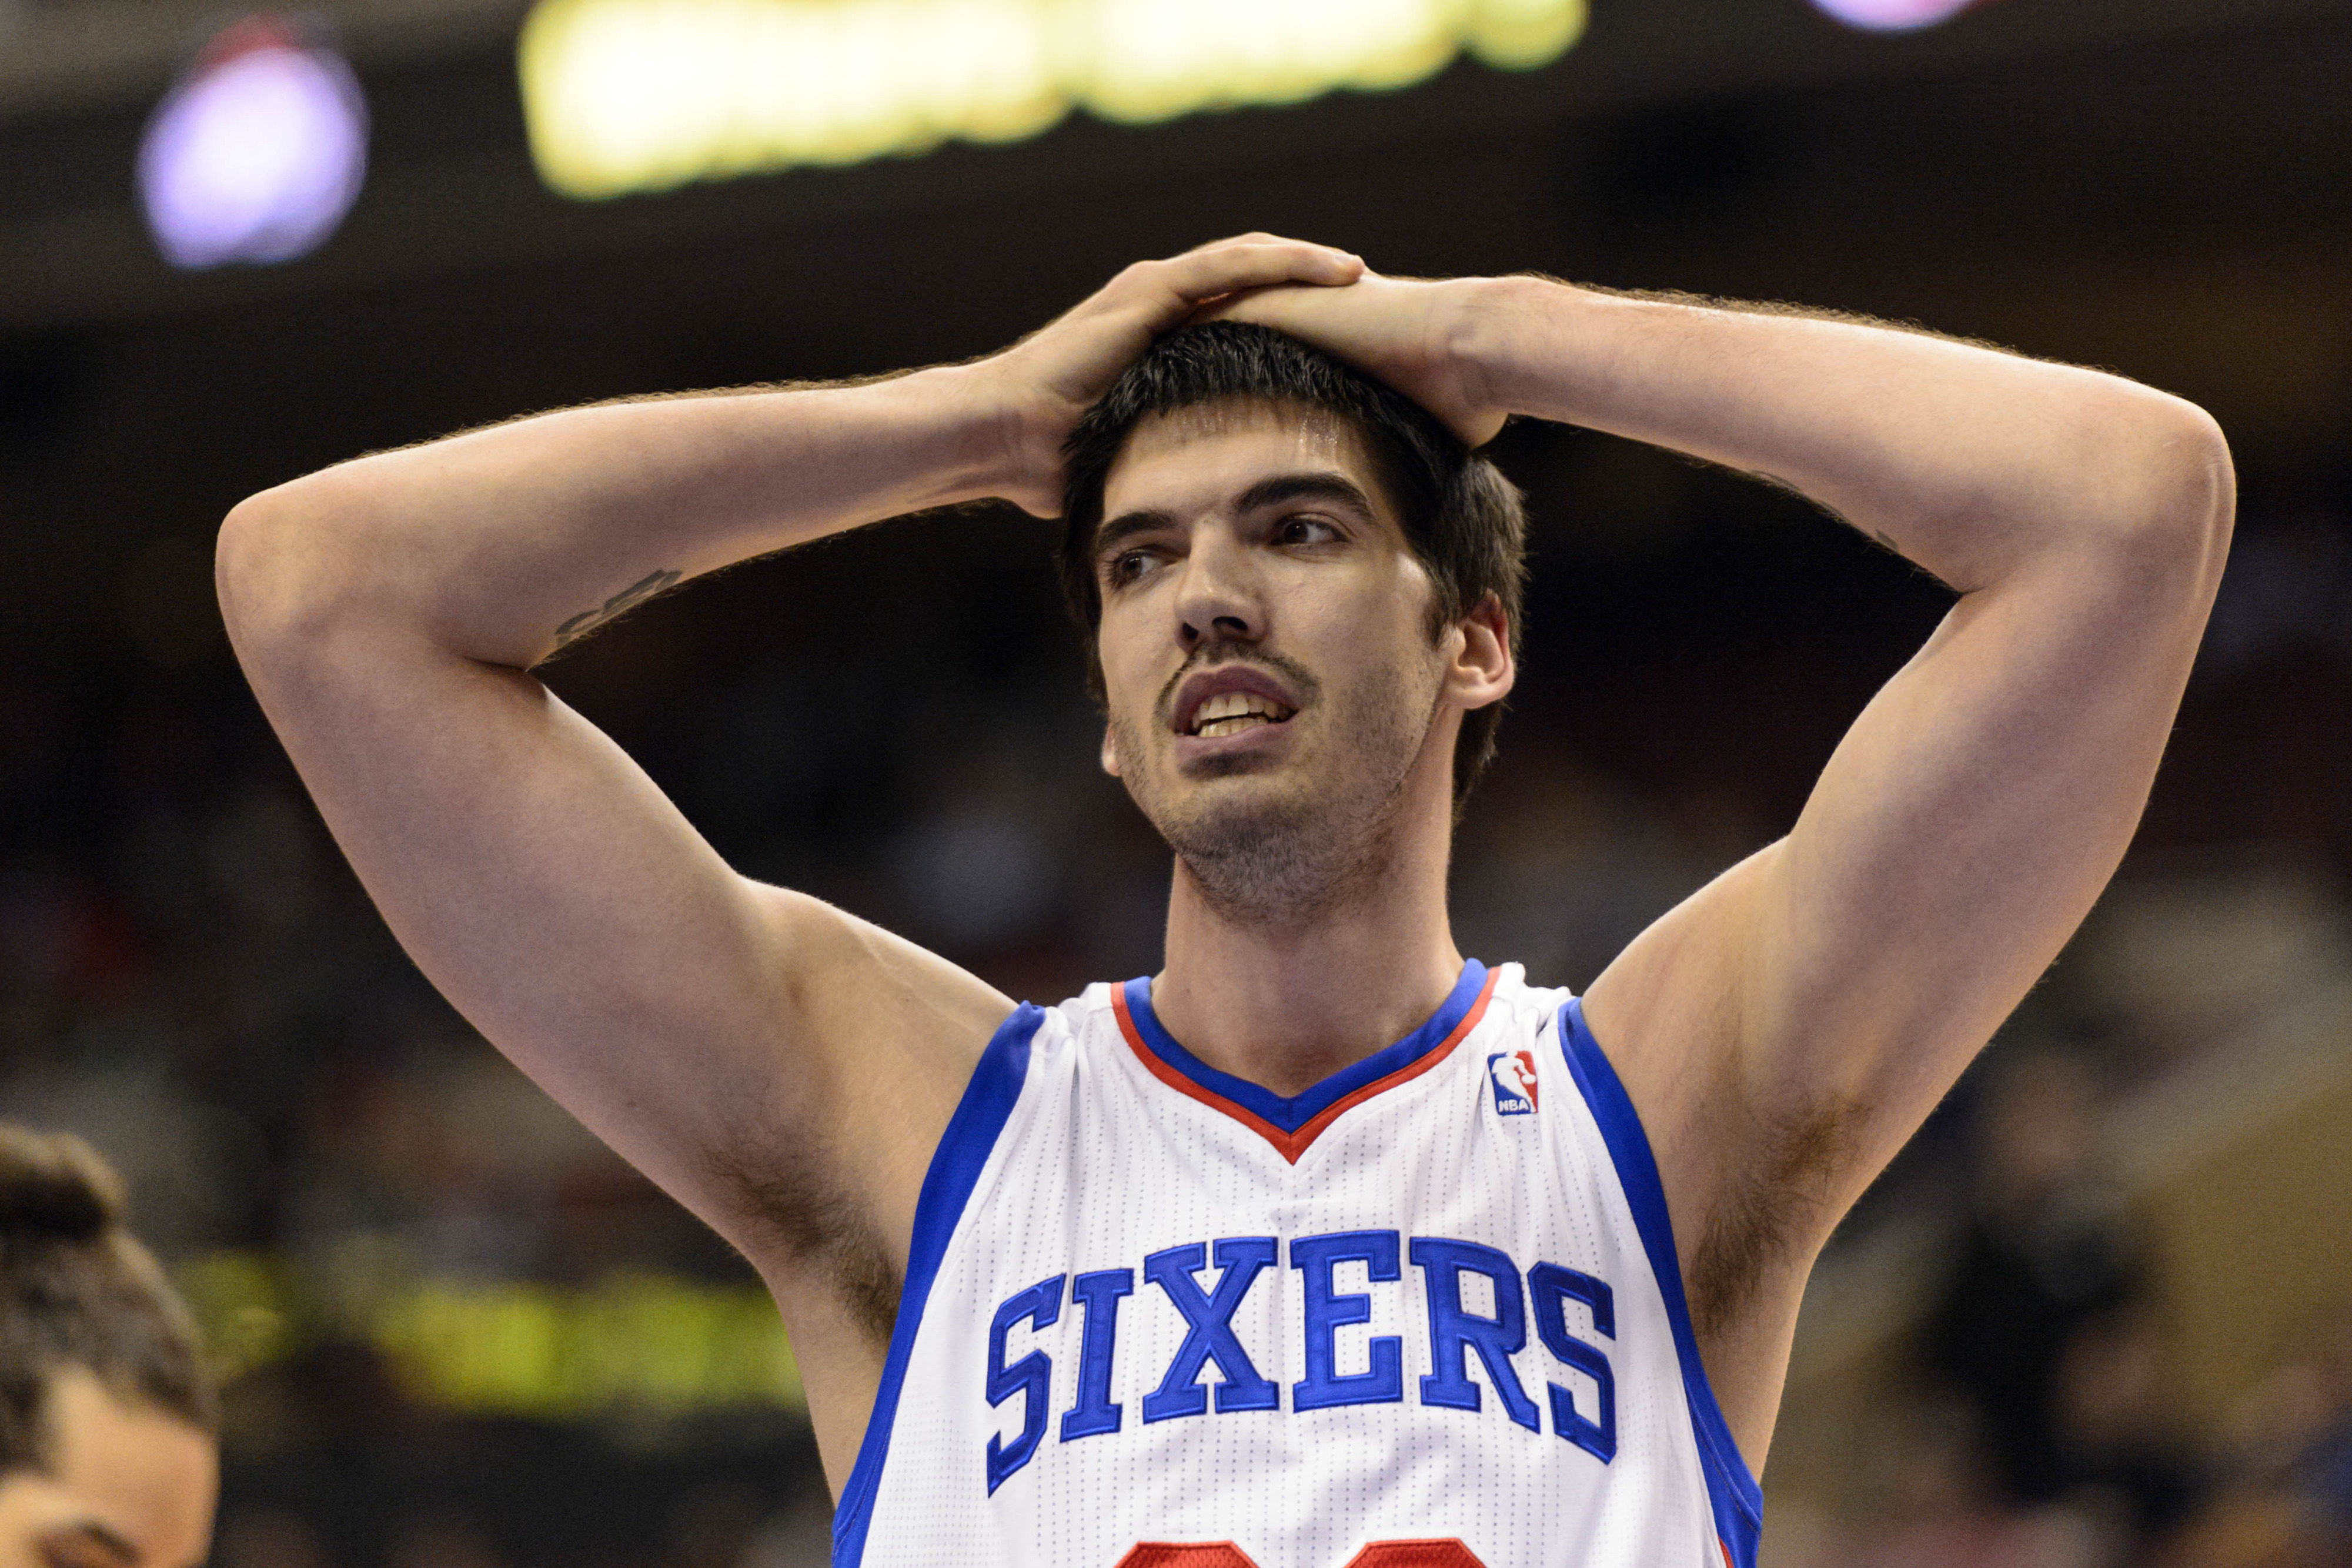 Will the Sixers' longest losing streak in history ever end?